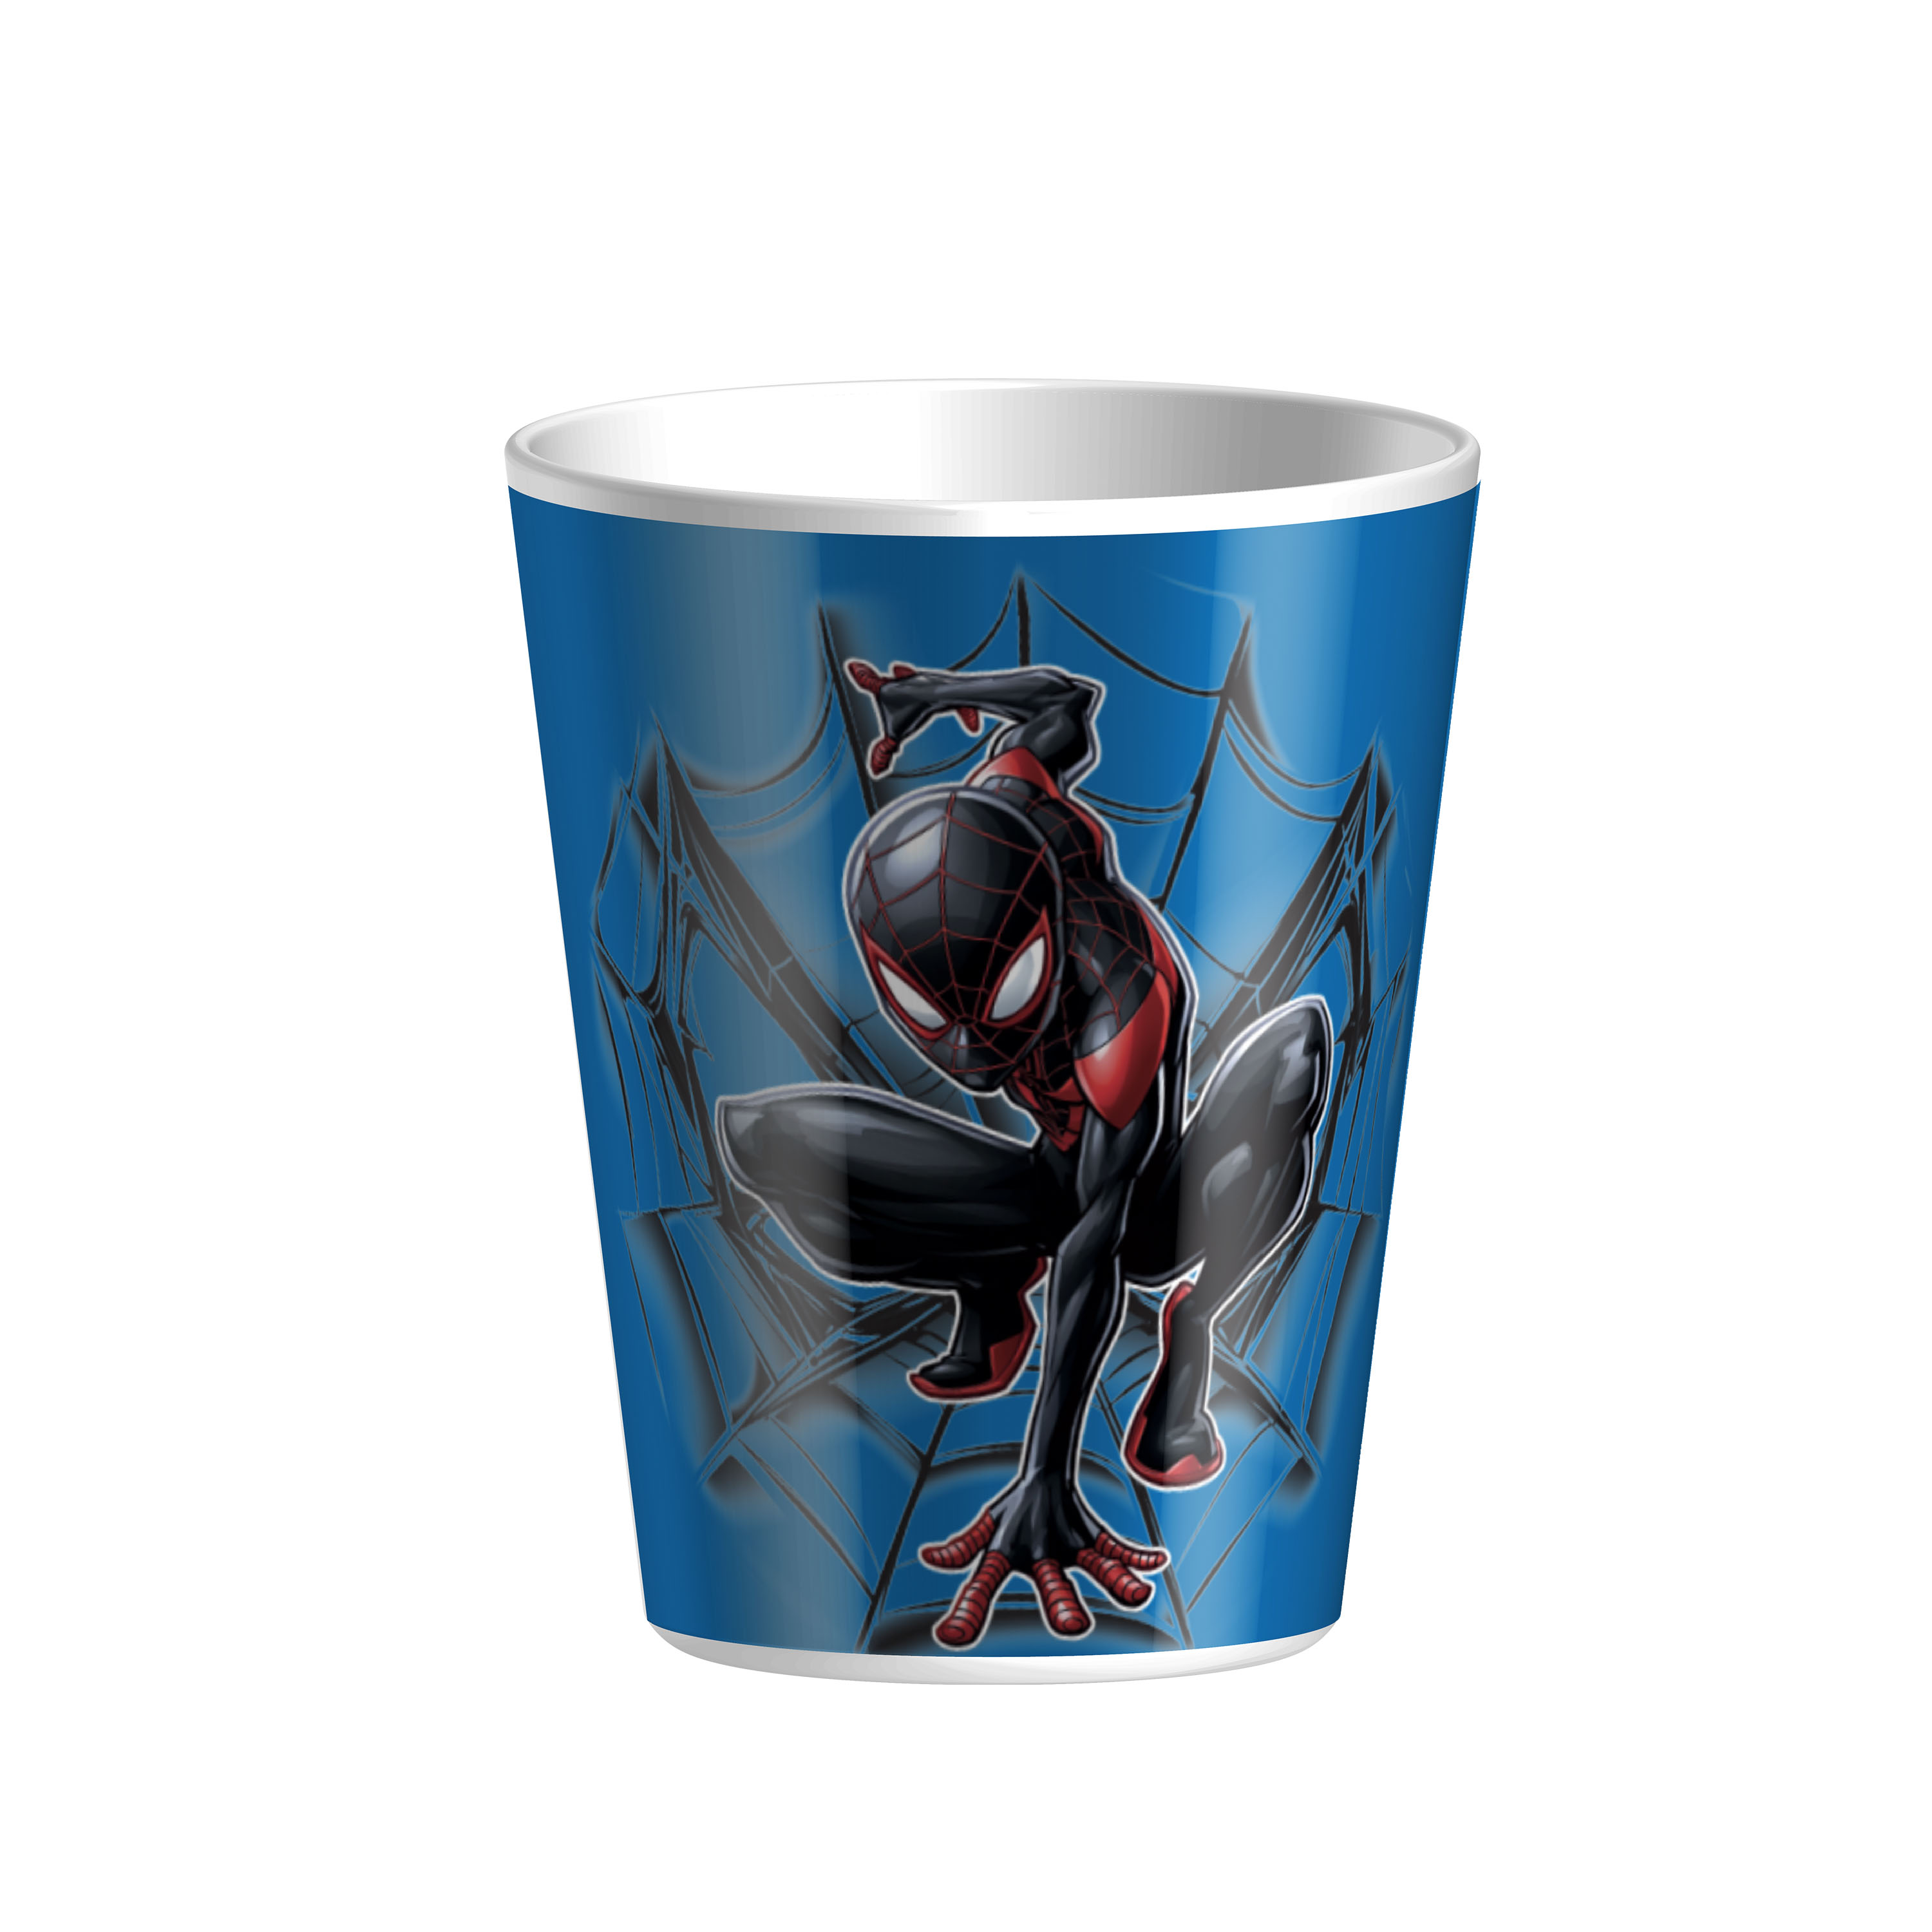 Marvel Kid's Dinnerware Set, Spider-Man, 3-piece set slideshow image 3